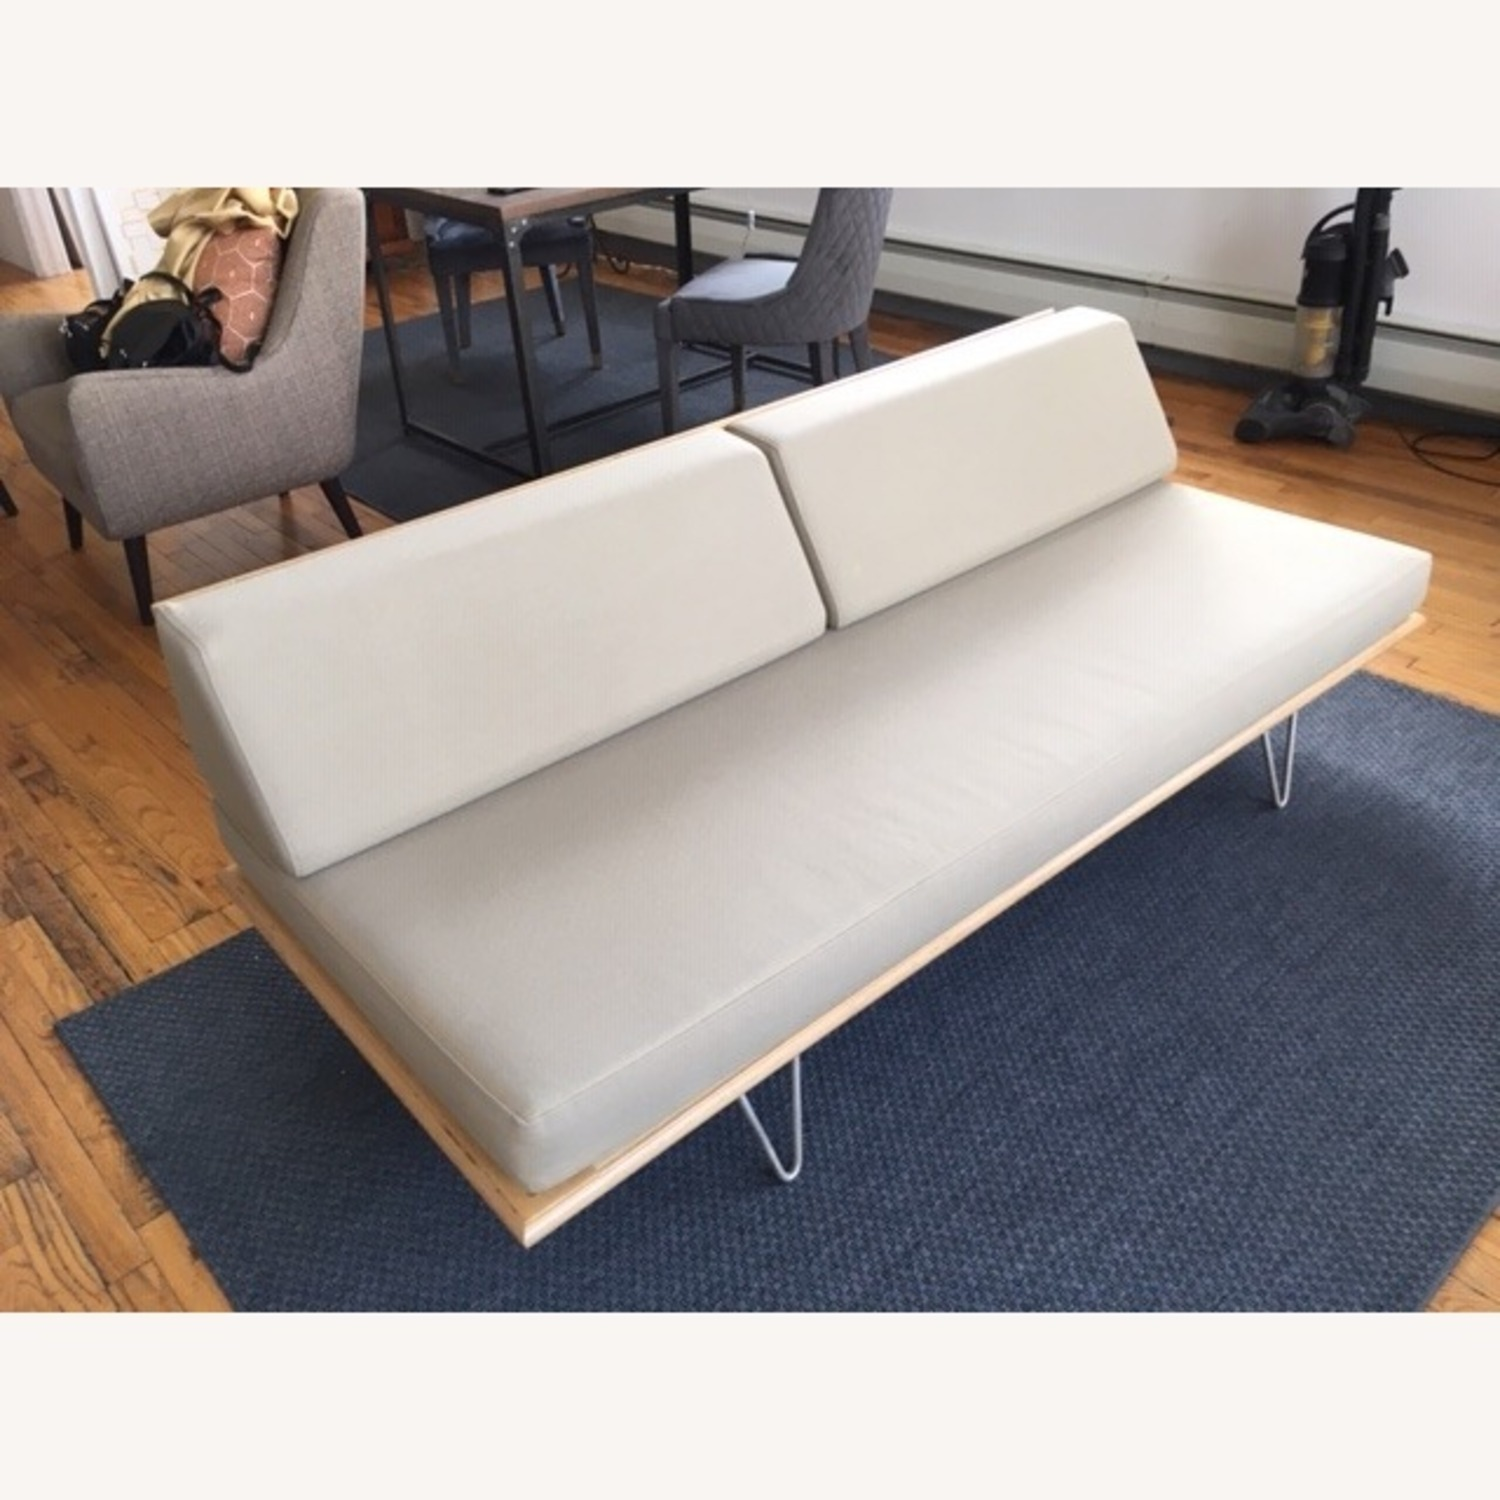 Herman Miller George Nelson Daybed - image-14